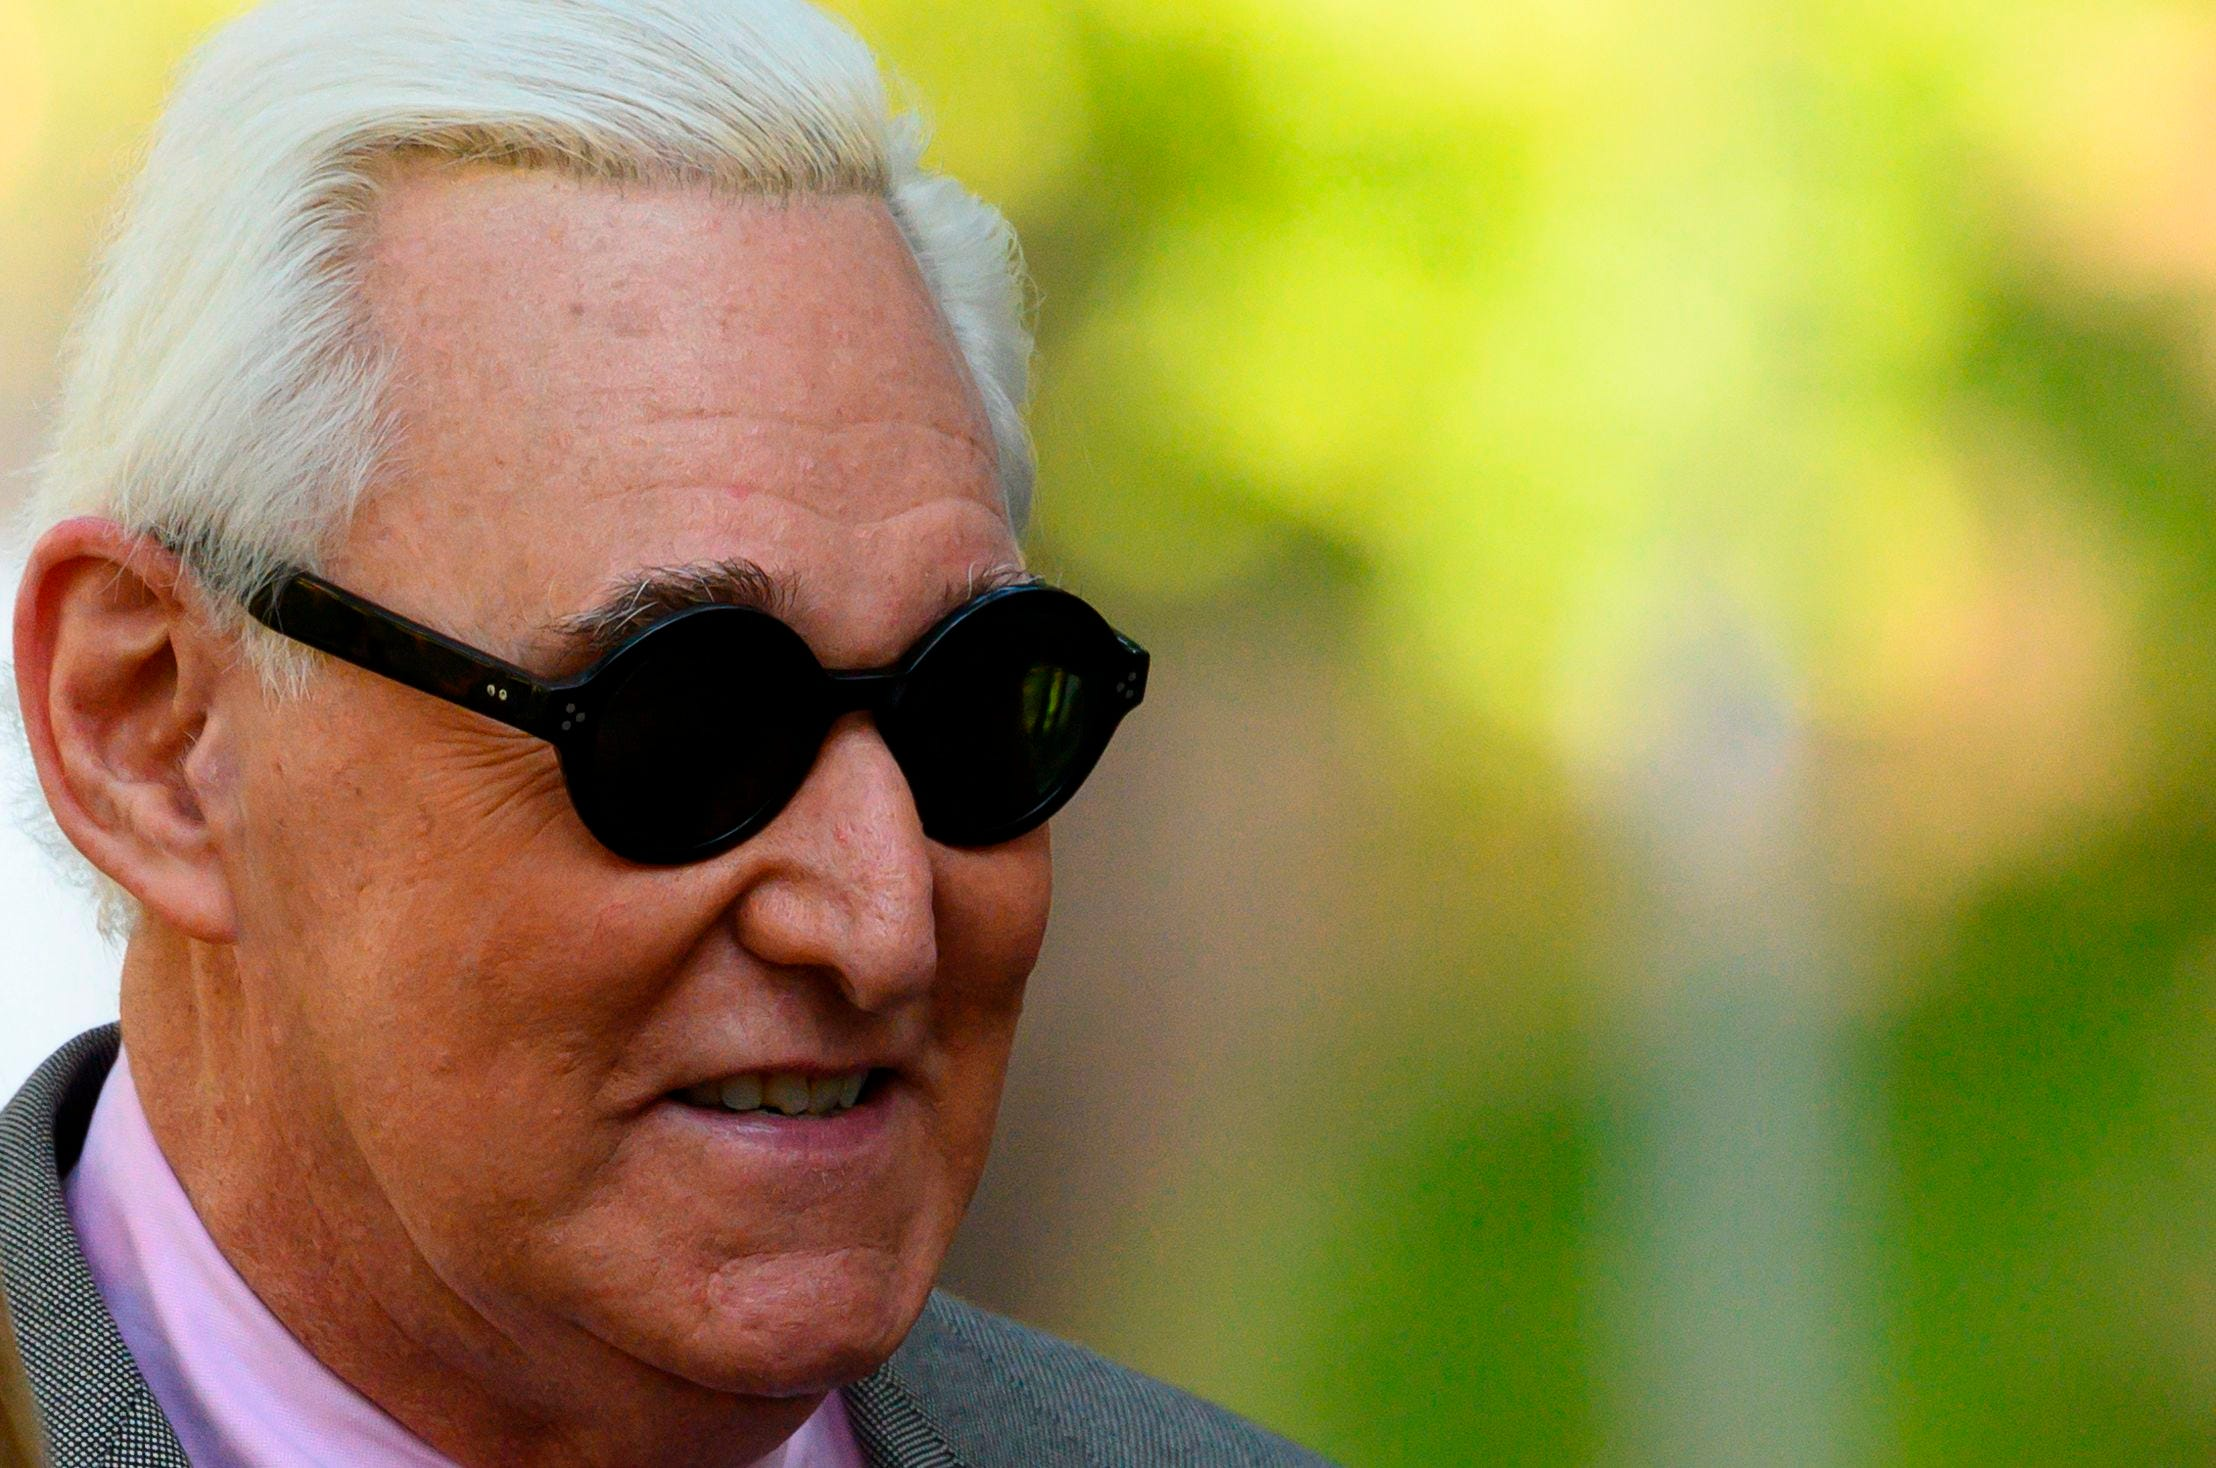 Trump grants clemency to Roger Stone for lying...